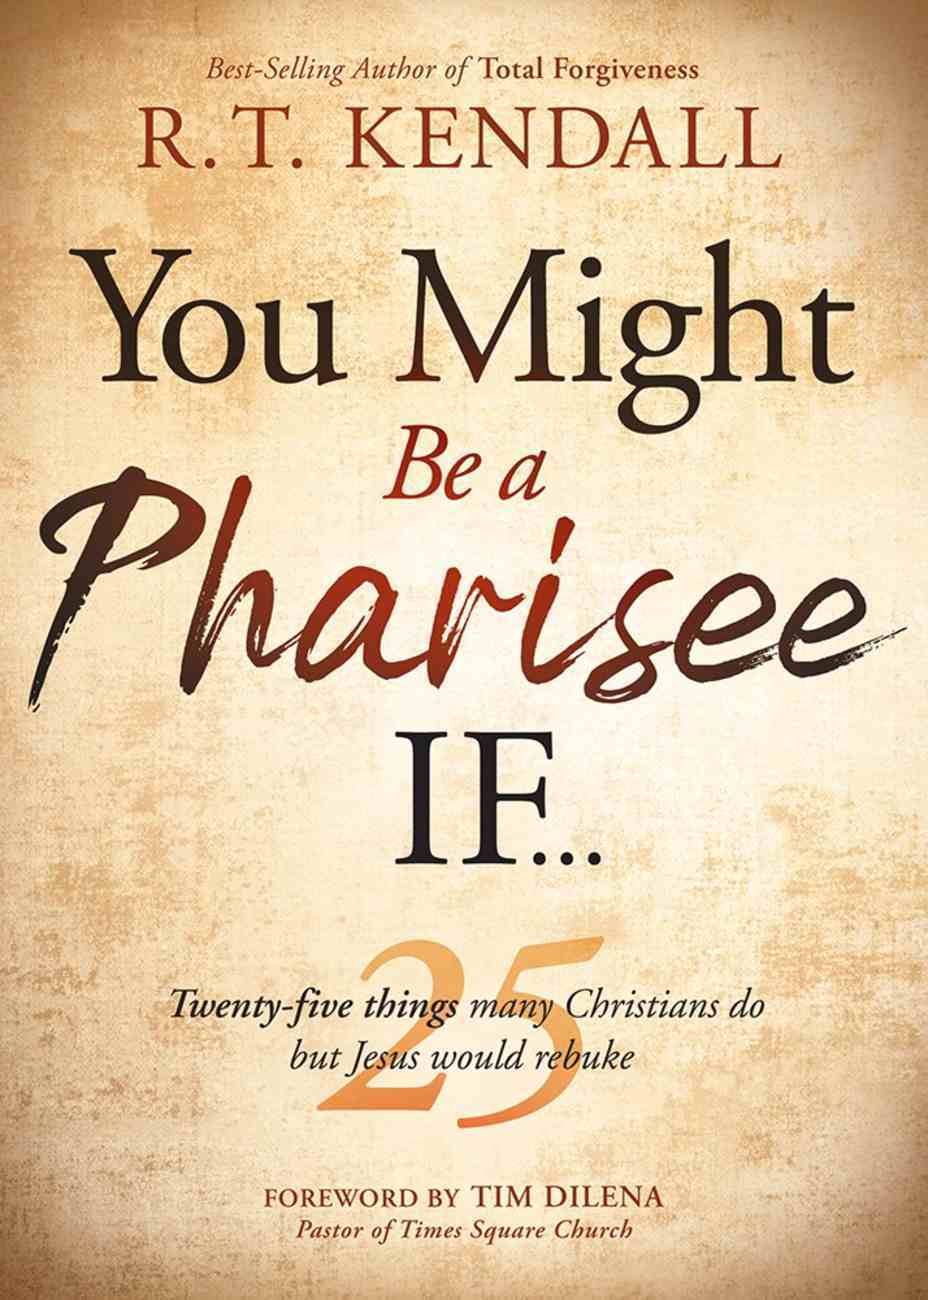 You Might Be a Pharisee If...: Twenty-Five Things Christians Do But Jesus Would Rebuke Paperback